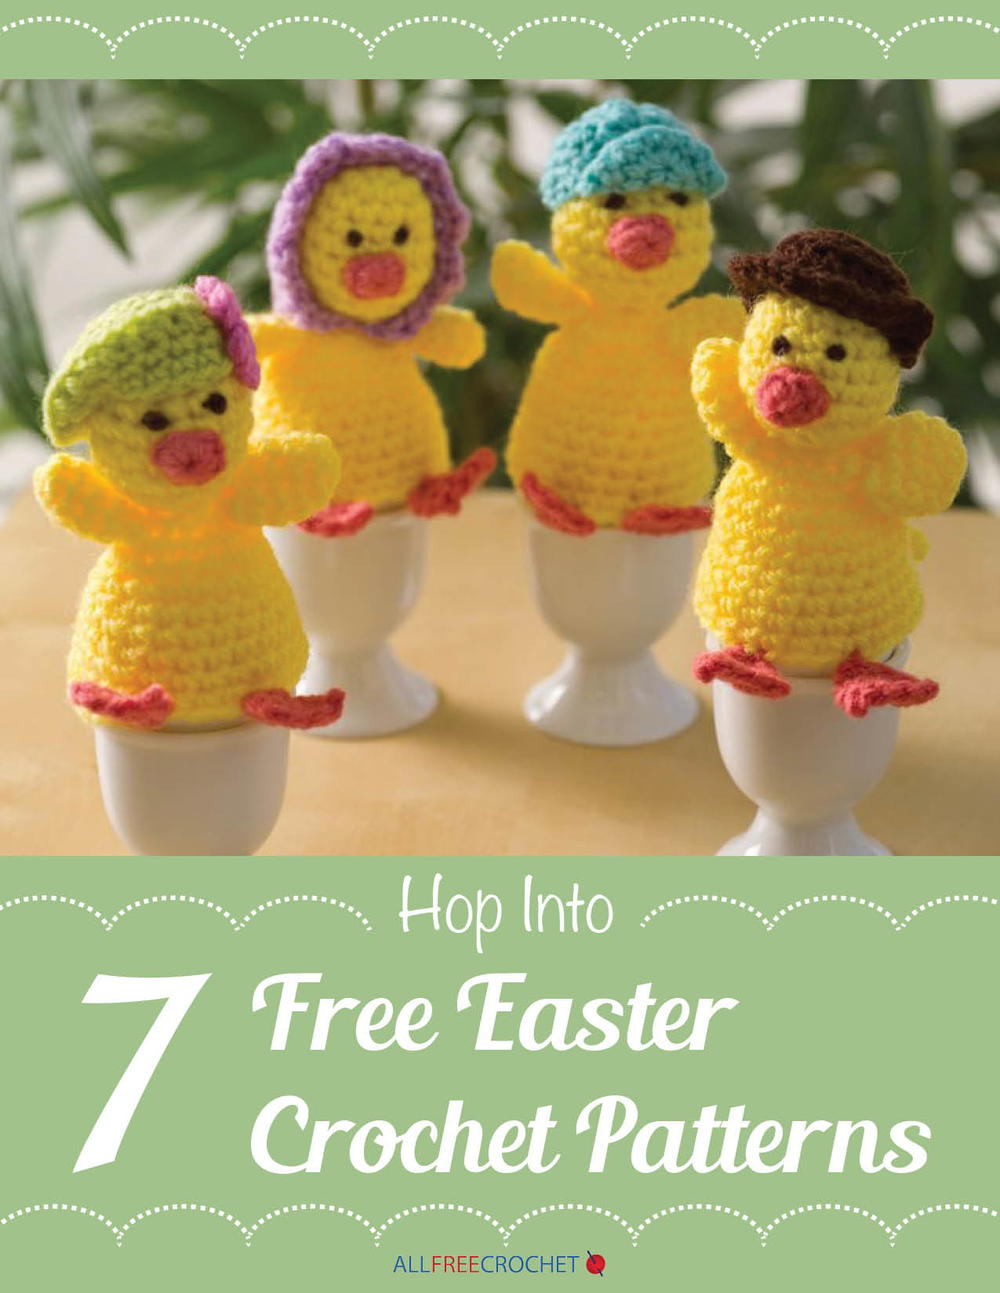 Hop into 7 Free Easter Crochet Patterns | AllFreeCrochet.com